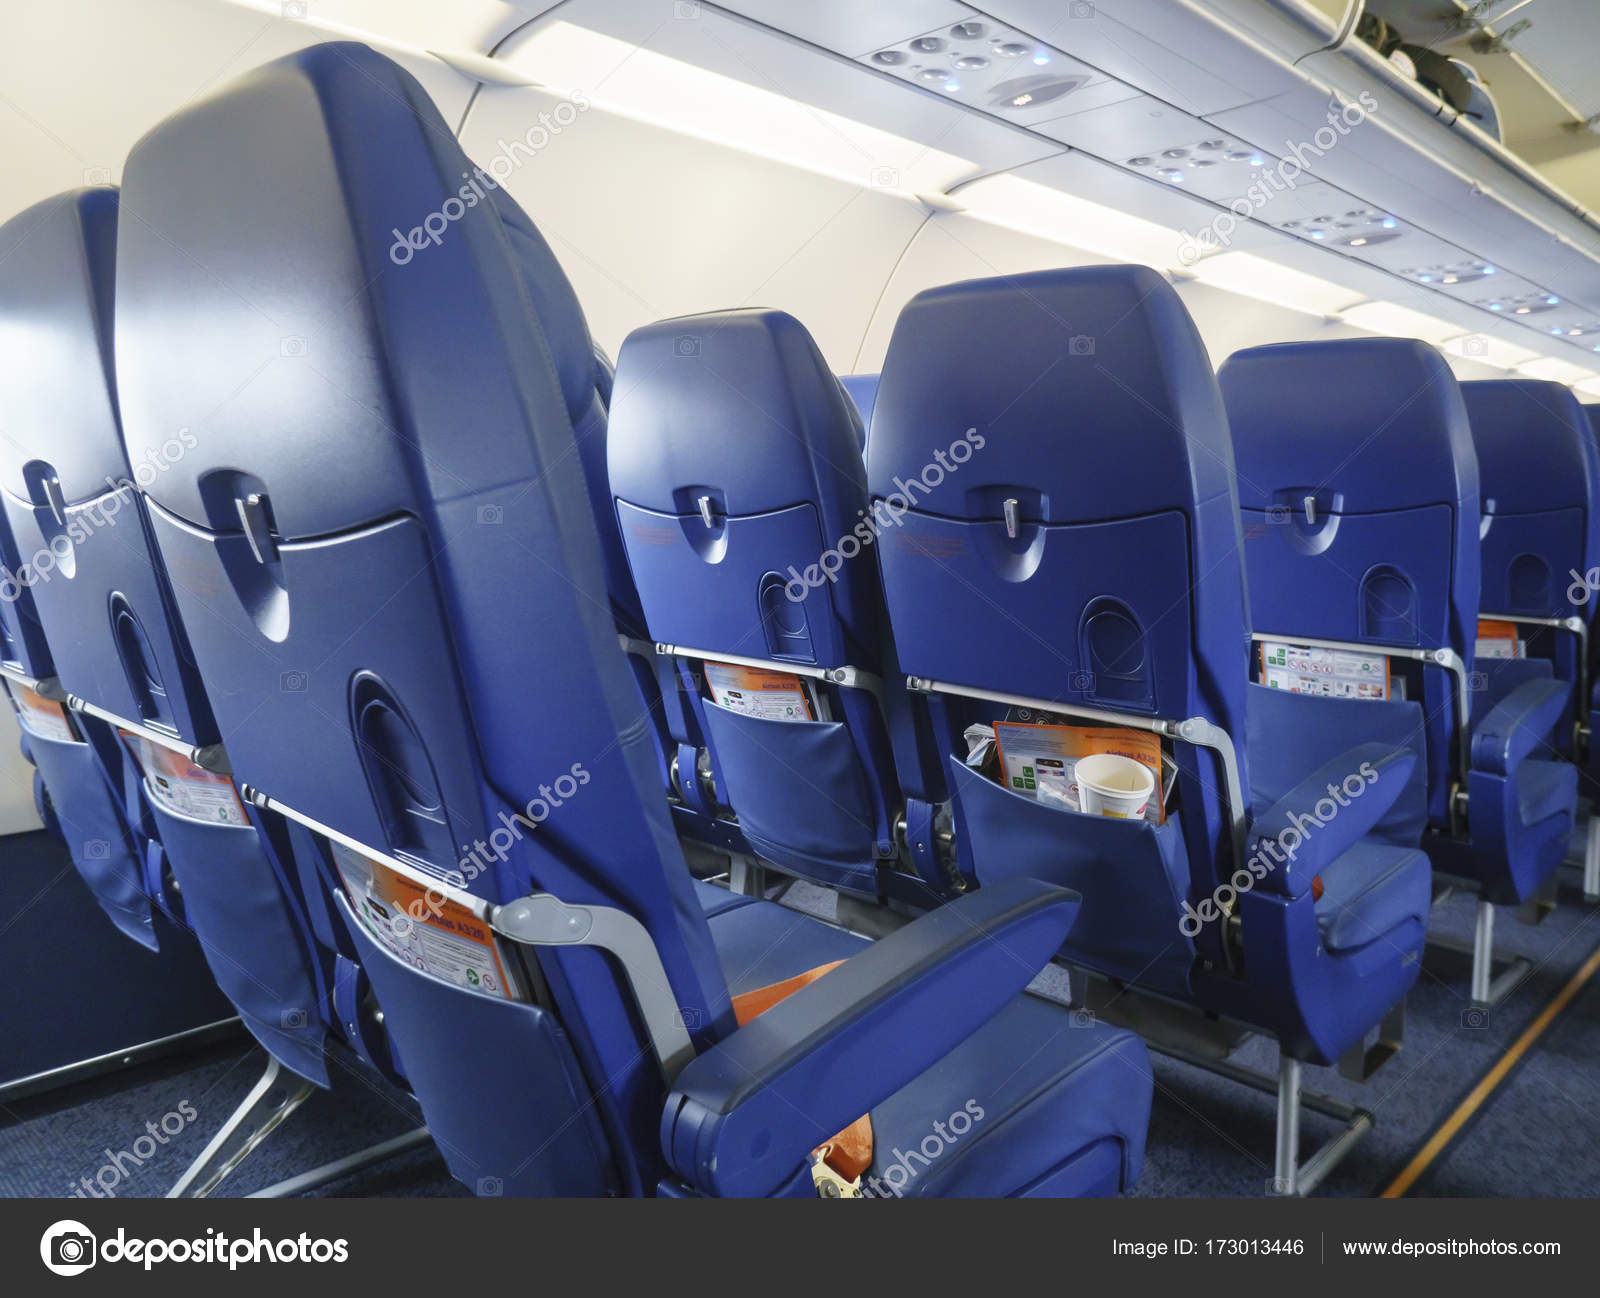 Chairs in the plane u2014 Stock Photo & Chairs in the plane u2014 Stock Photo © Kurganov #173013446